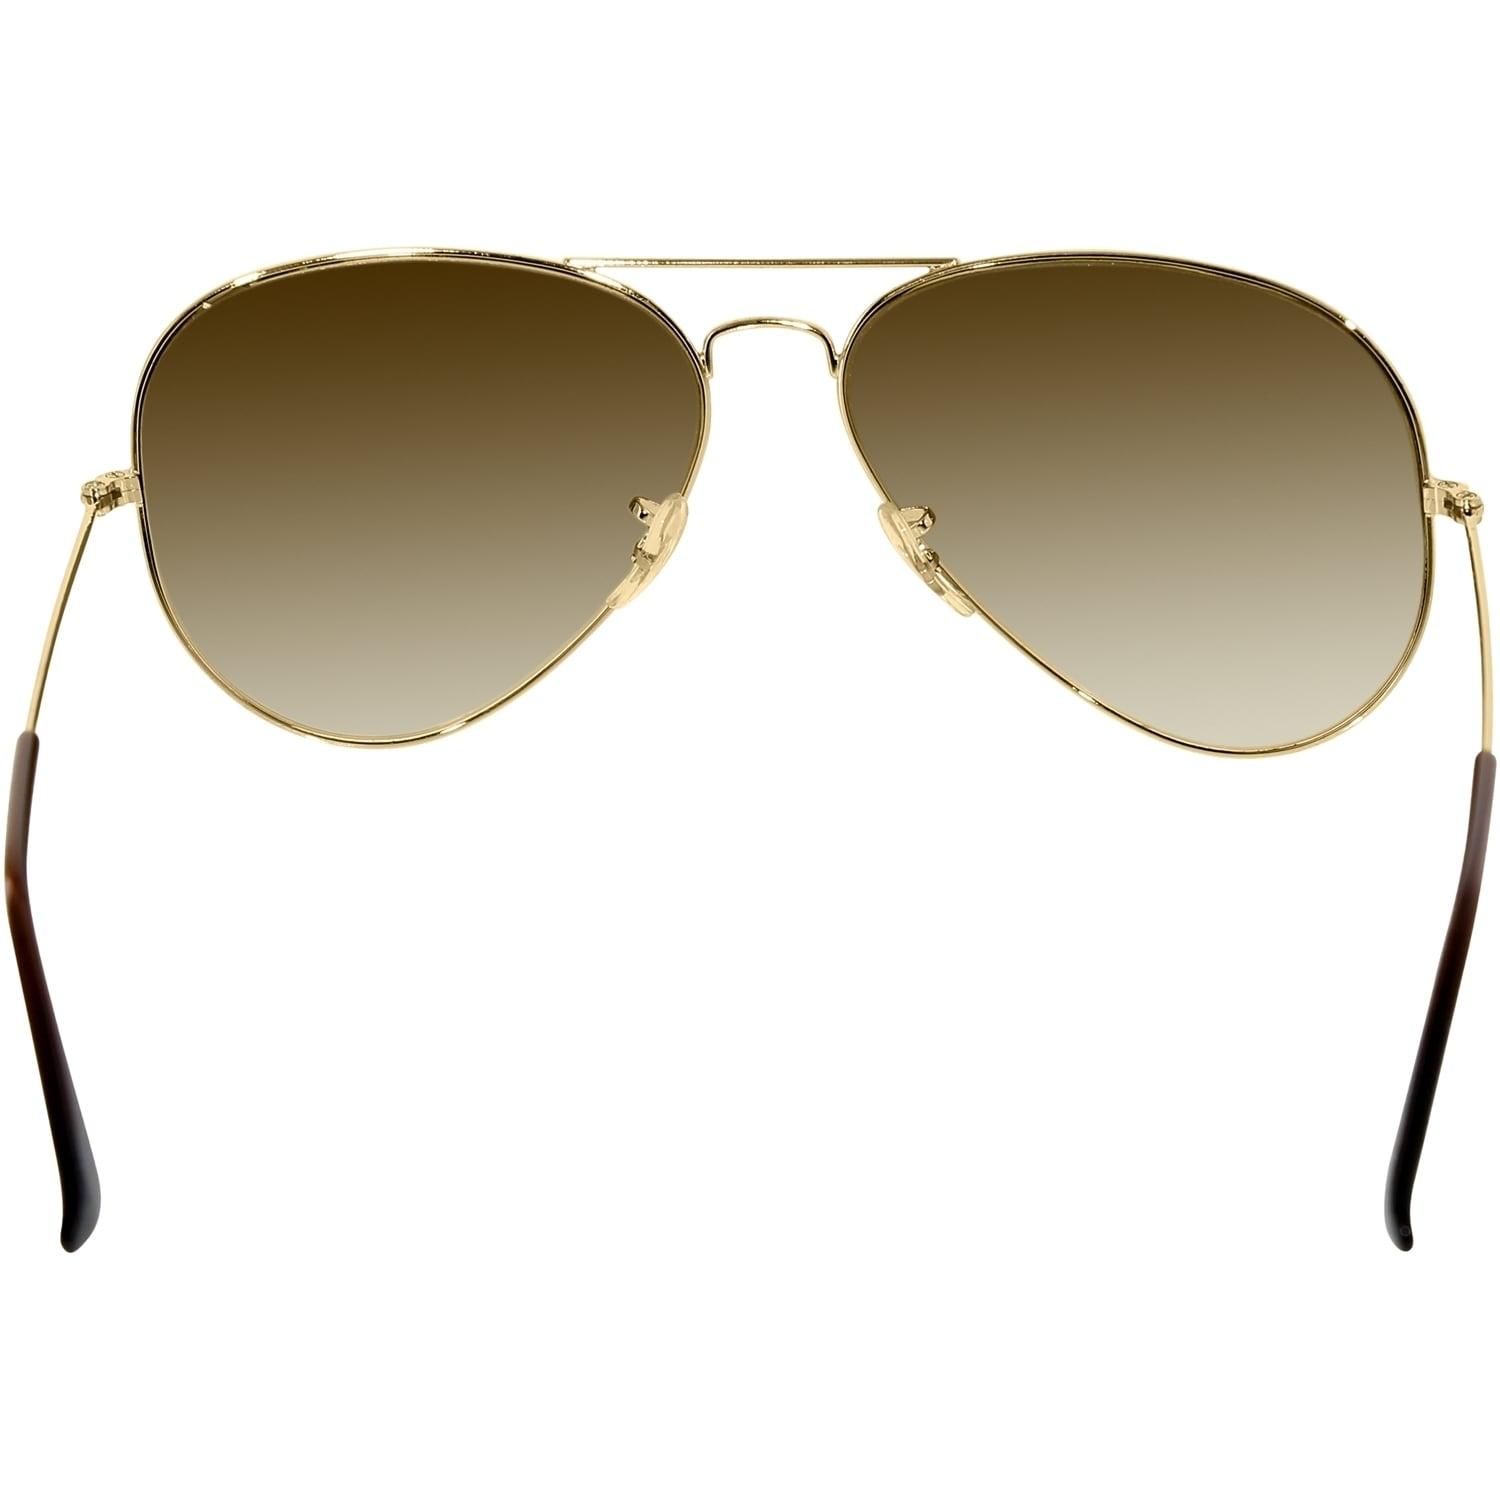 dca4535297 ... where to buy shop ray ban aviator rb3025 unisex gold frame light brown  gradient lens sunglasses ...